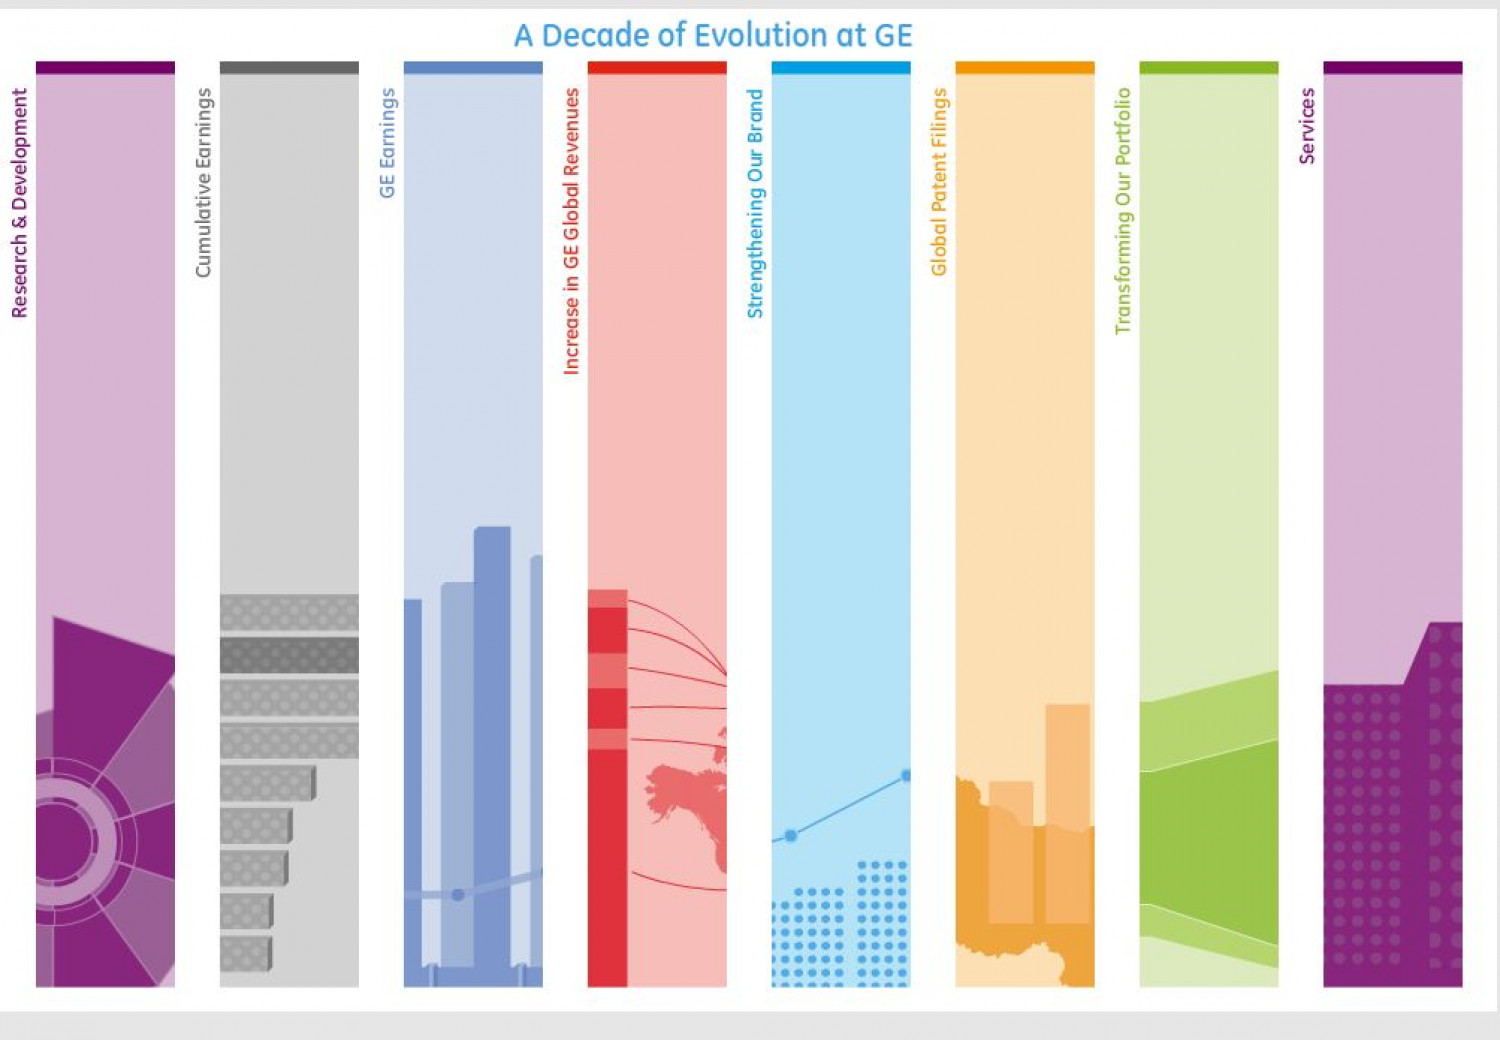 A Decade of Change Infographic